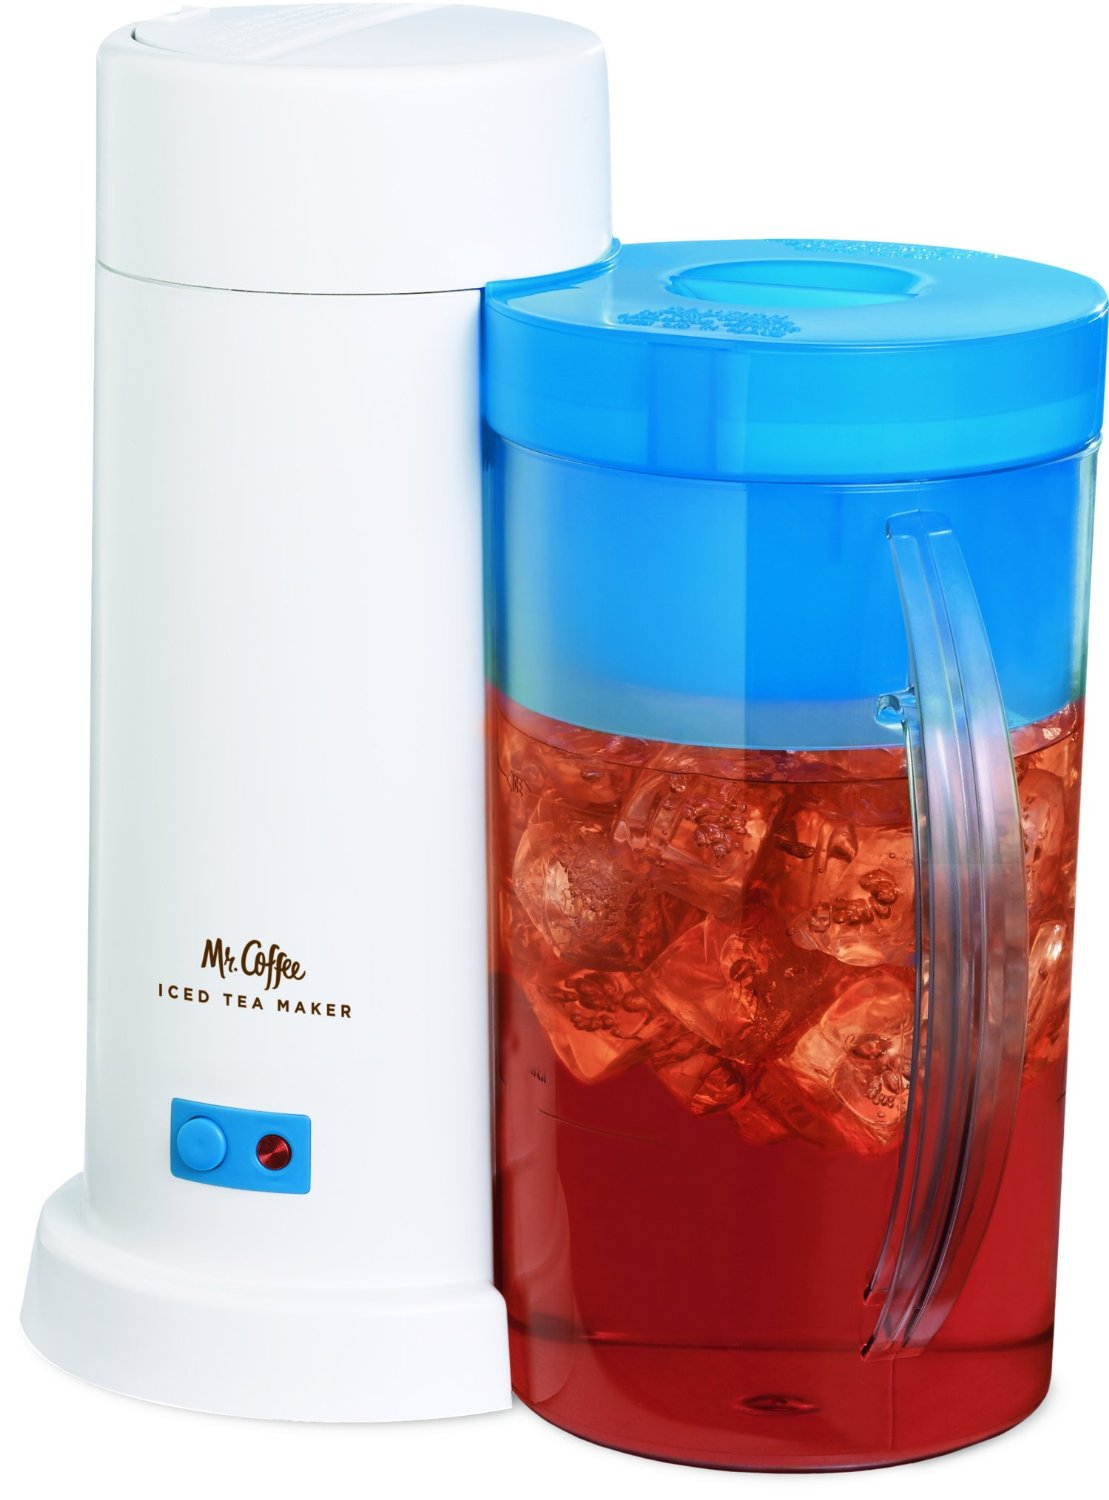 Mr. Coffee 2 Quart Iced Tea Maker